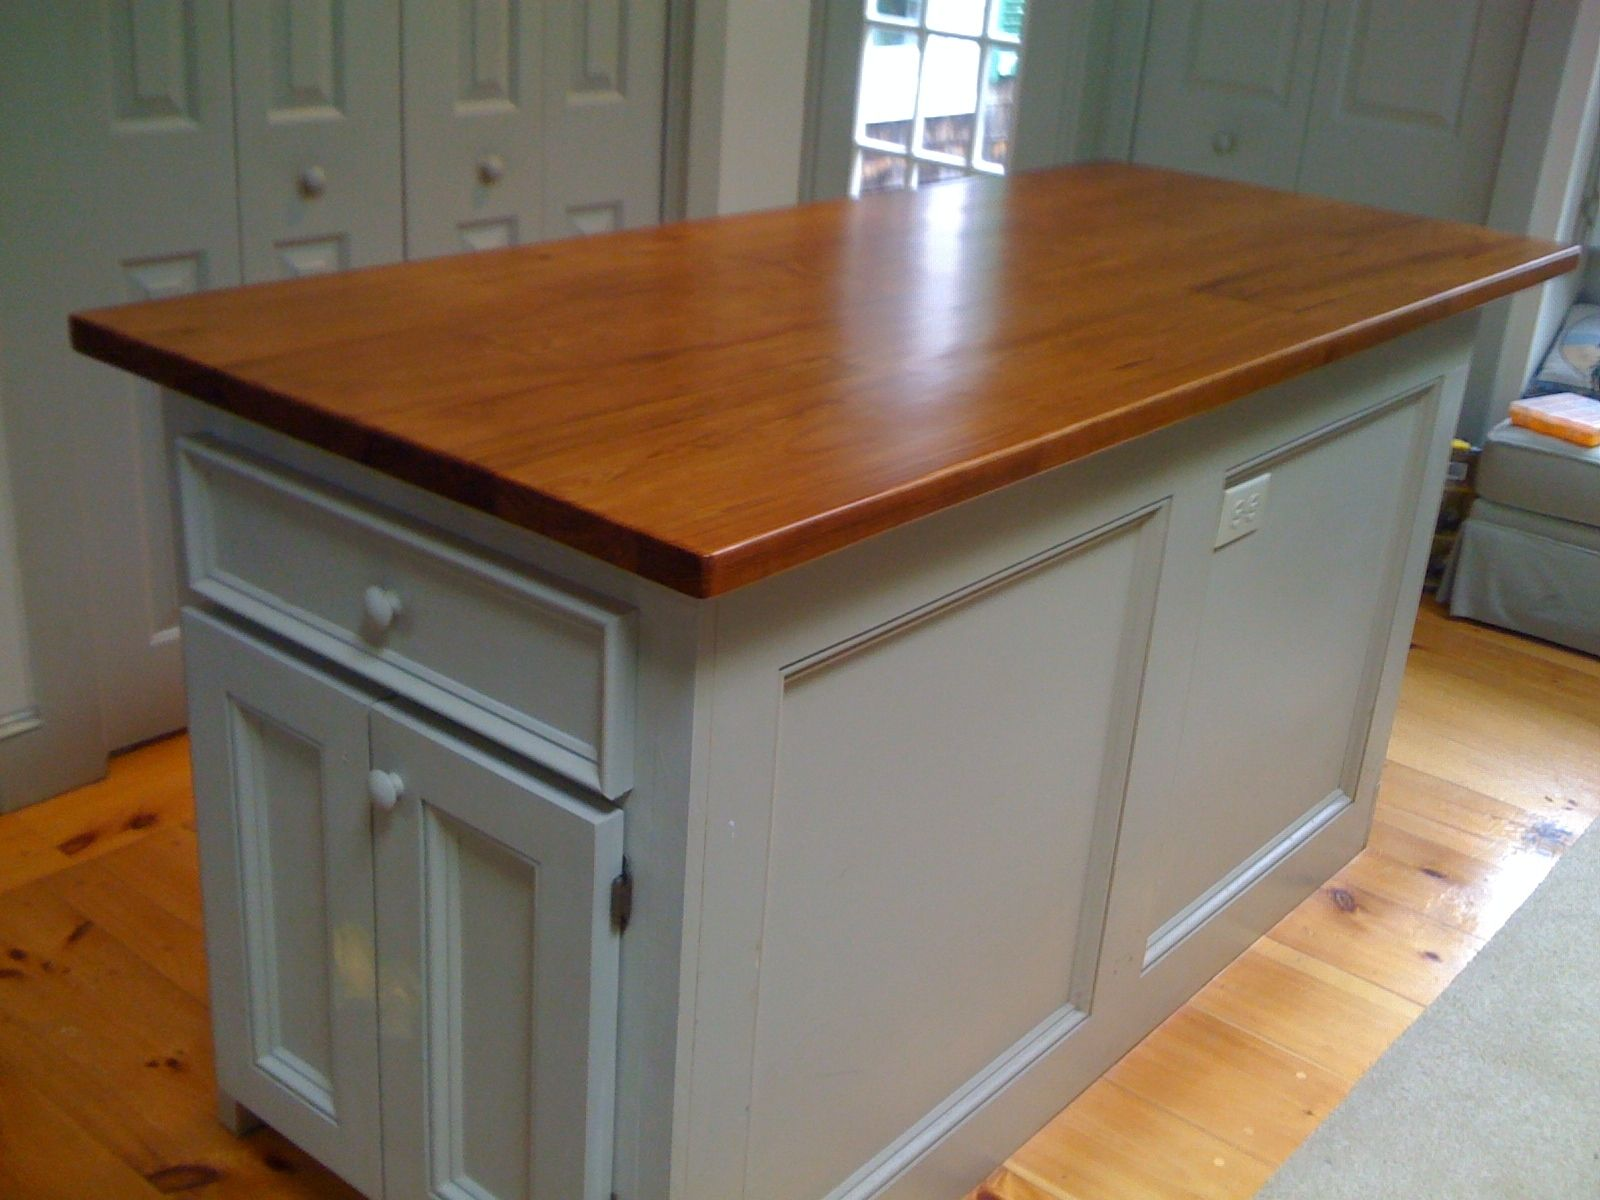 Handmade Custom Kitchen Island Reclaimed Wood Top by Cape Cod ...